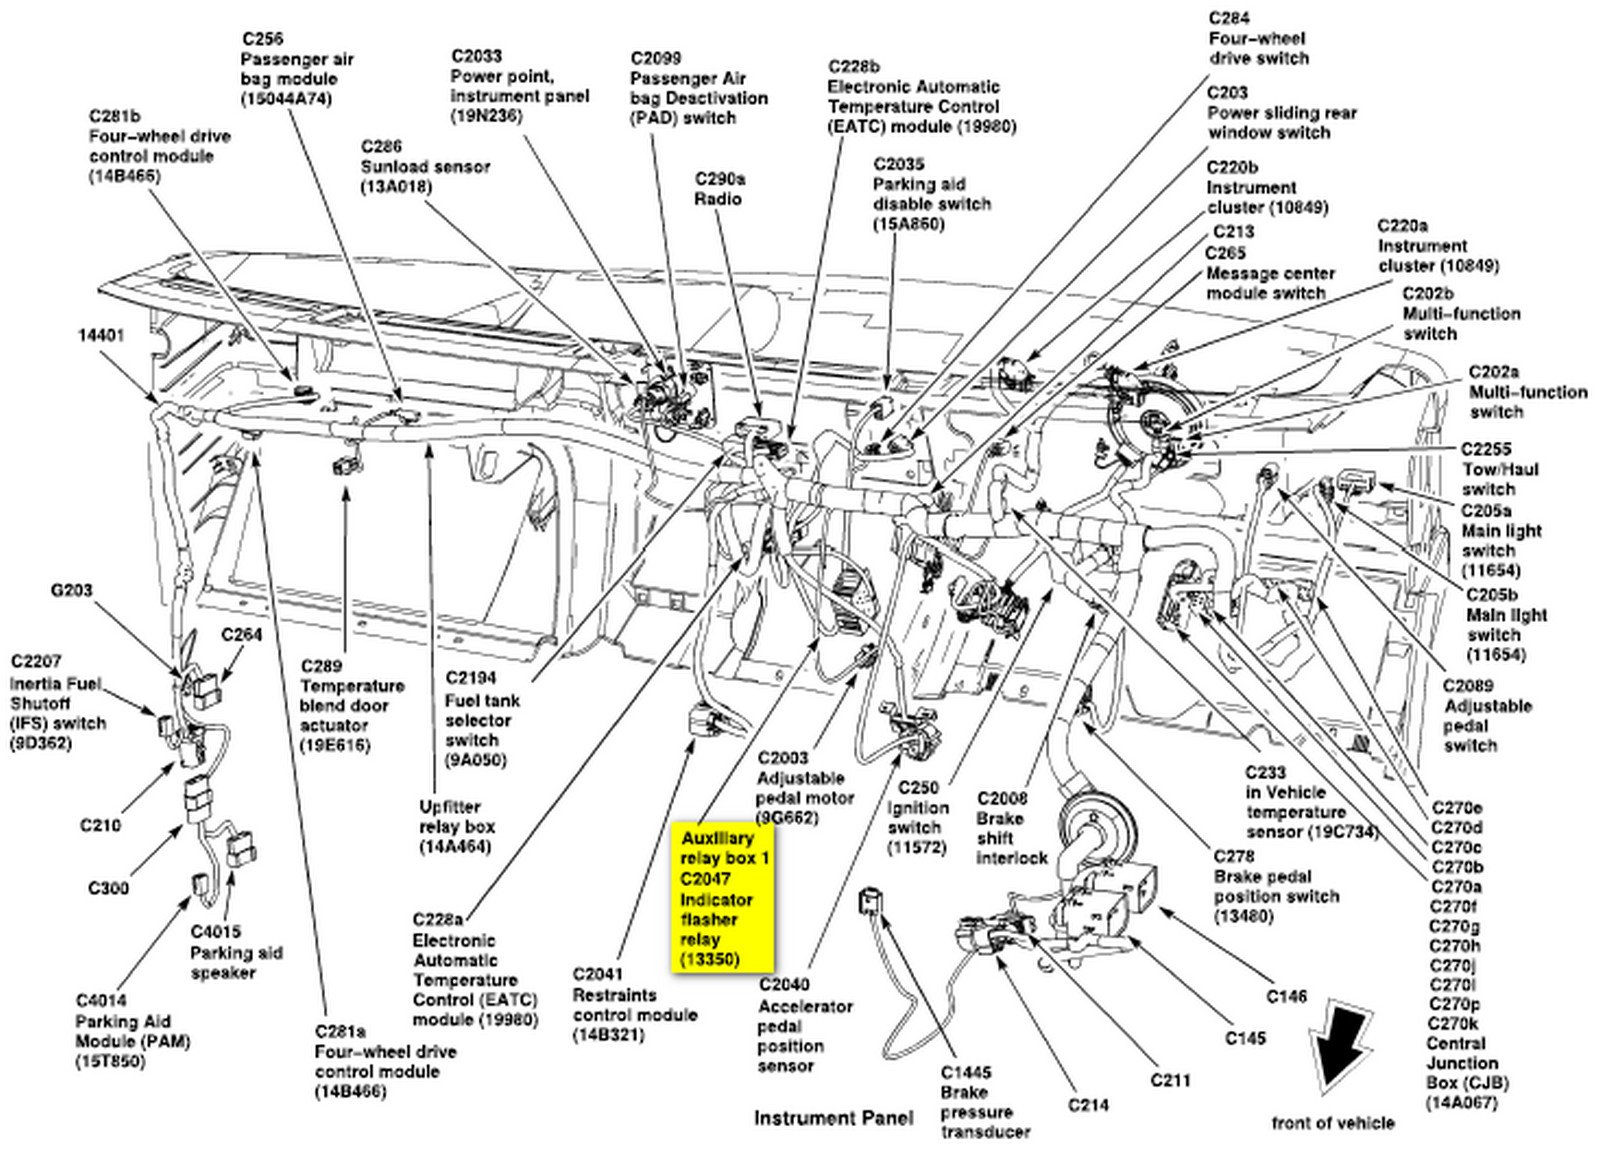 99 Dodge Dakota Turn Signal Wiring Diagram additionally T23314380 2014 ford e series headlight turn off also 952566 Headlight Wiring Diagram 02 F250 W Drl additionally Ford F 150 1993 Ford F150 993 Ford F 150 Steering Column as well Ford Windstar 1998 Ford Windstar Gem Module. on multifunction wiring diagram 2002 f350